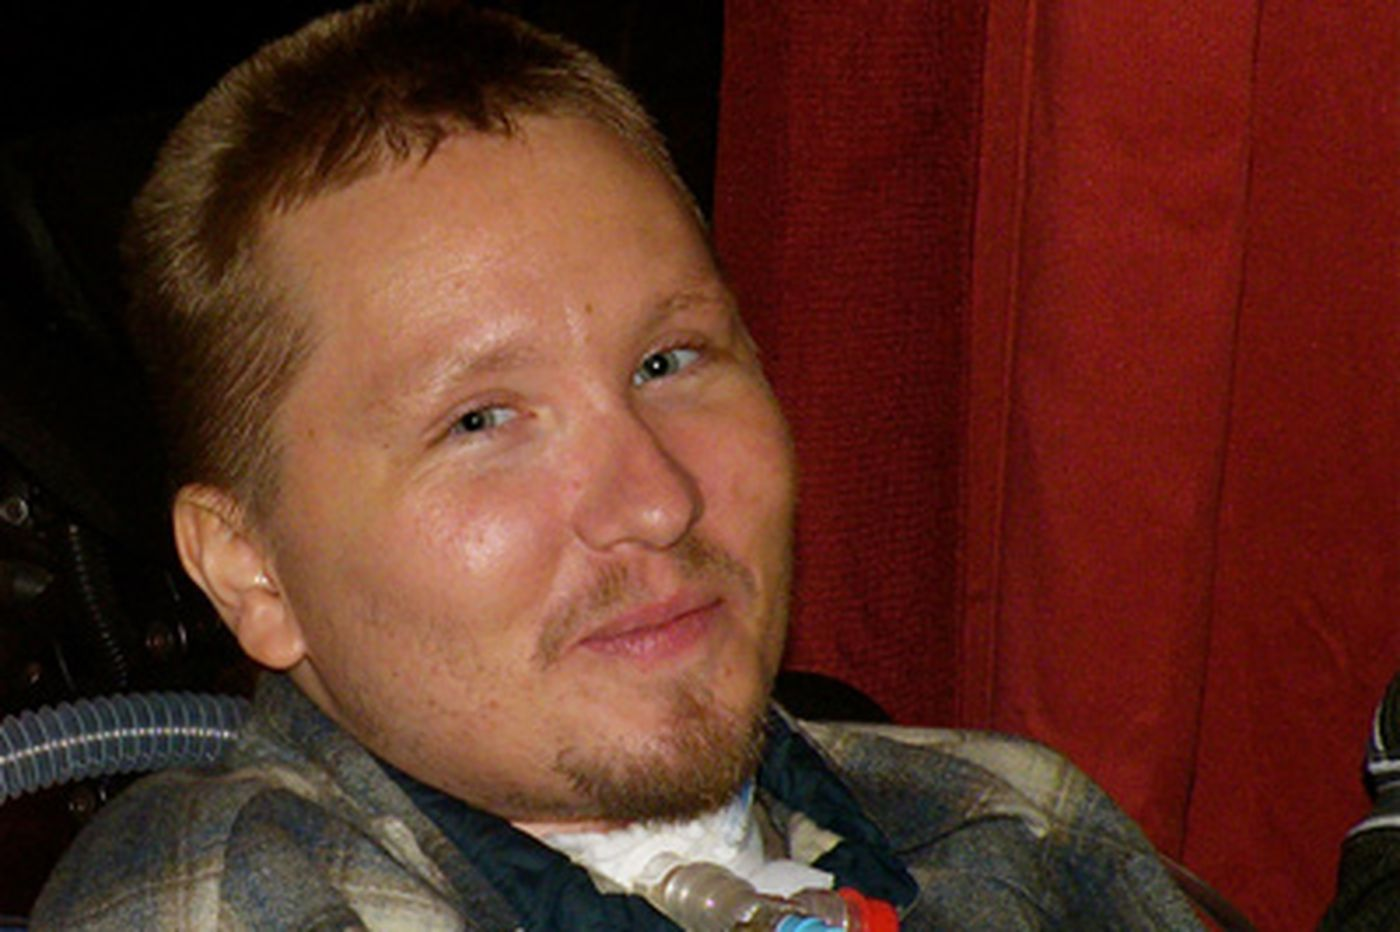 Daren Dieter, 29, paralyzed in 2007 shooting, dies